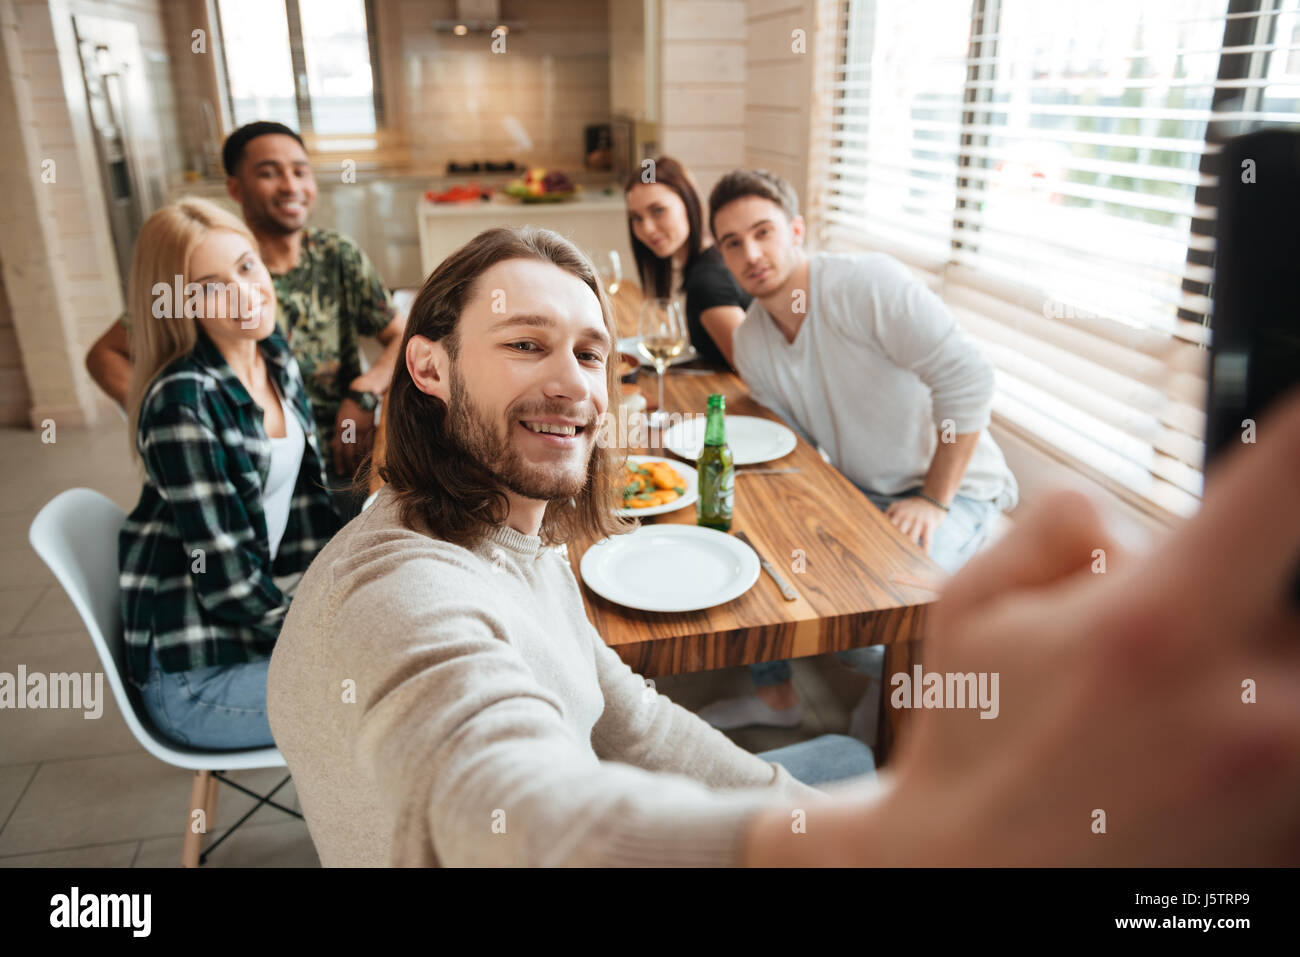 Attractive young man taking a selfie photo with friends in the kitchen while having lunch together at home - Stock Image